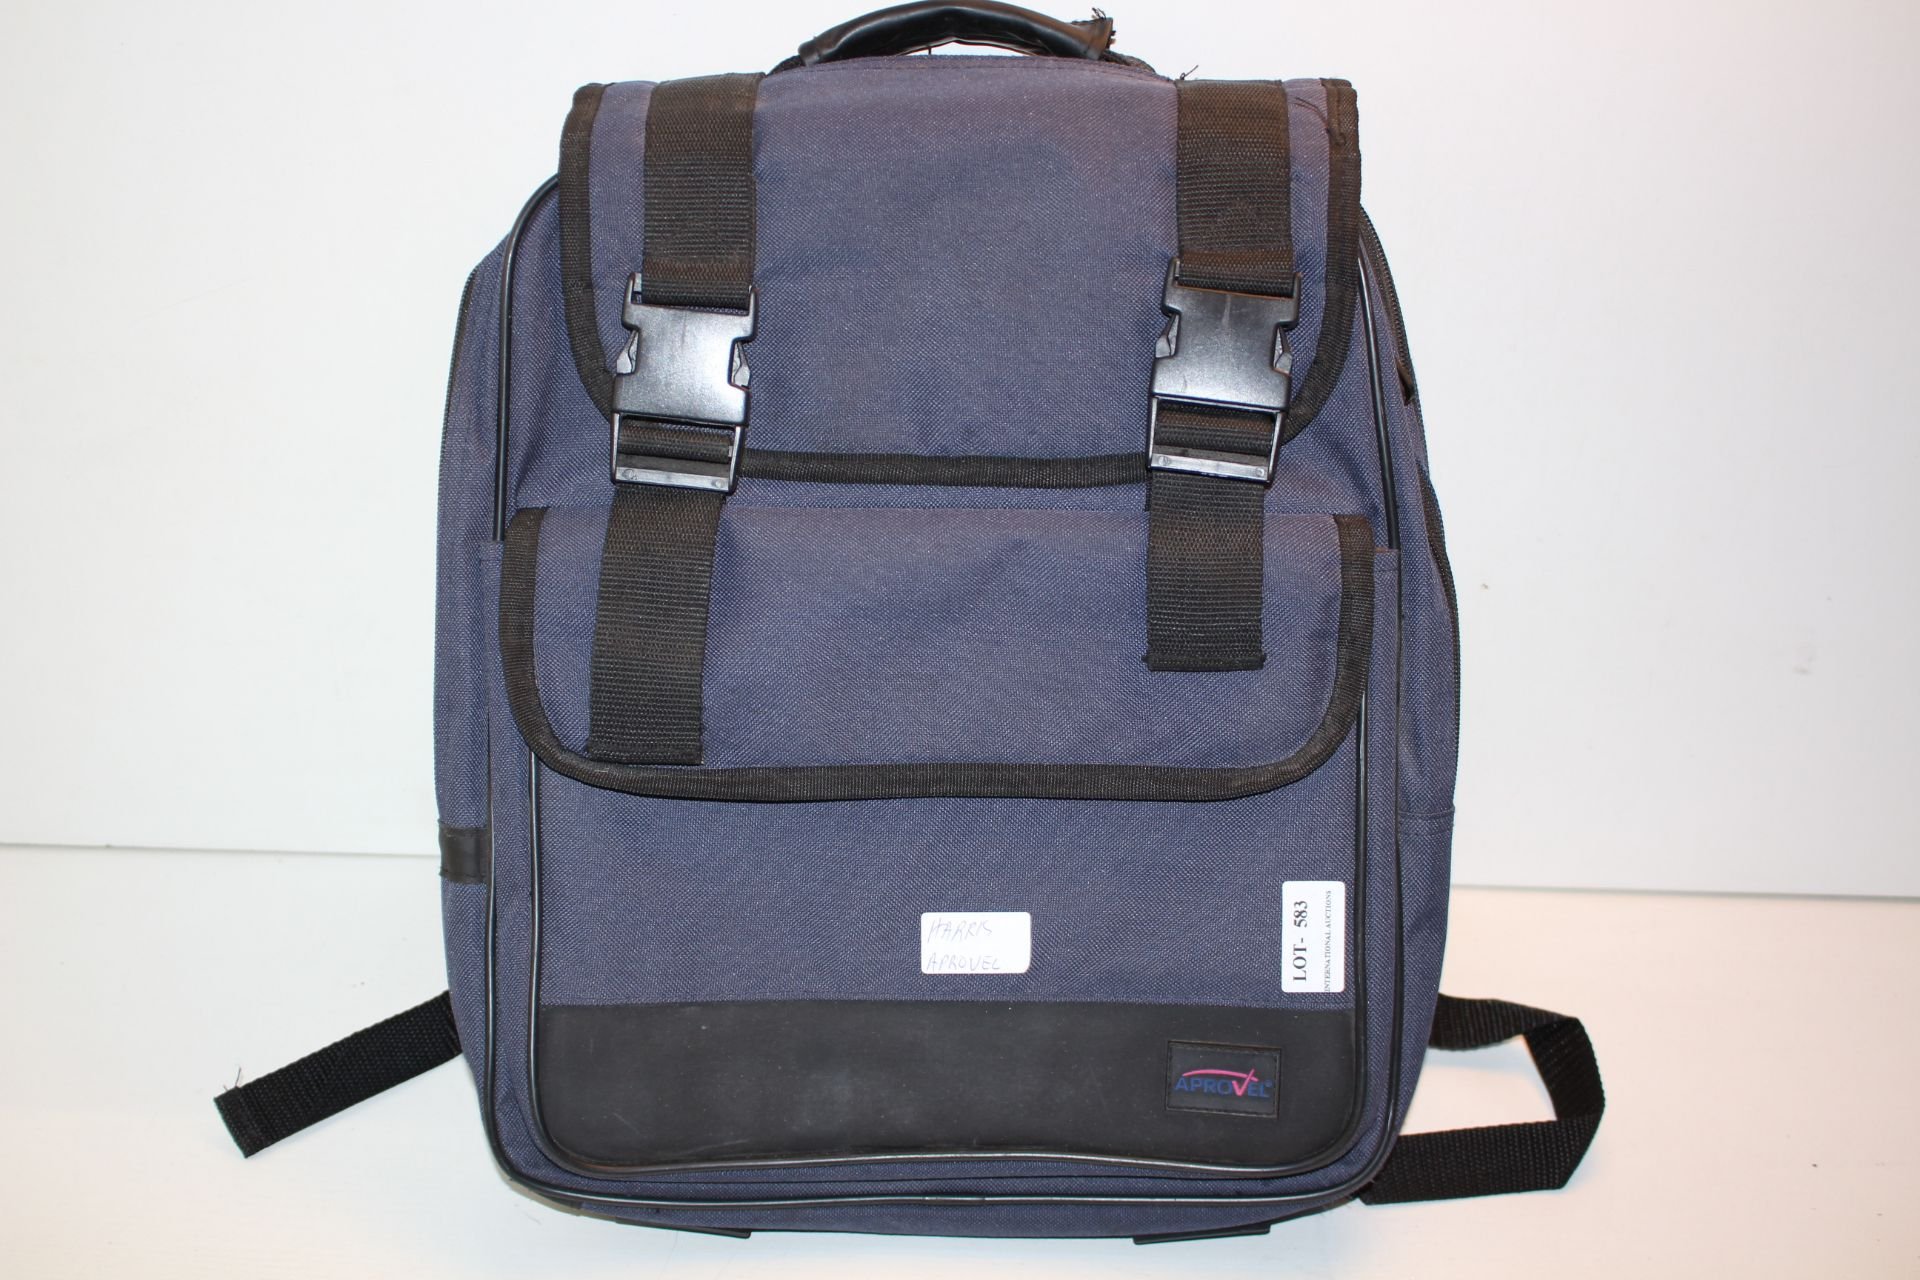 APPROVAL RUCKSACKCondition ReportAppraisal Available on Request- All Items are Unchecked/Untested